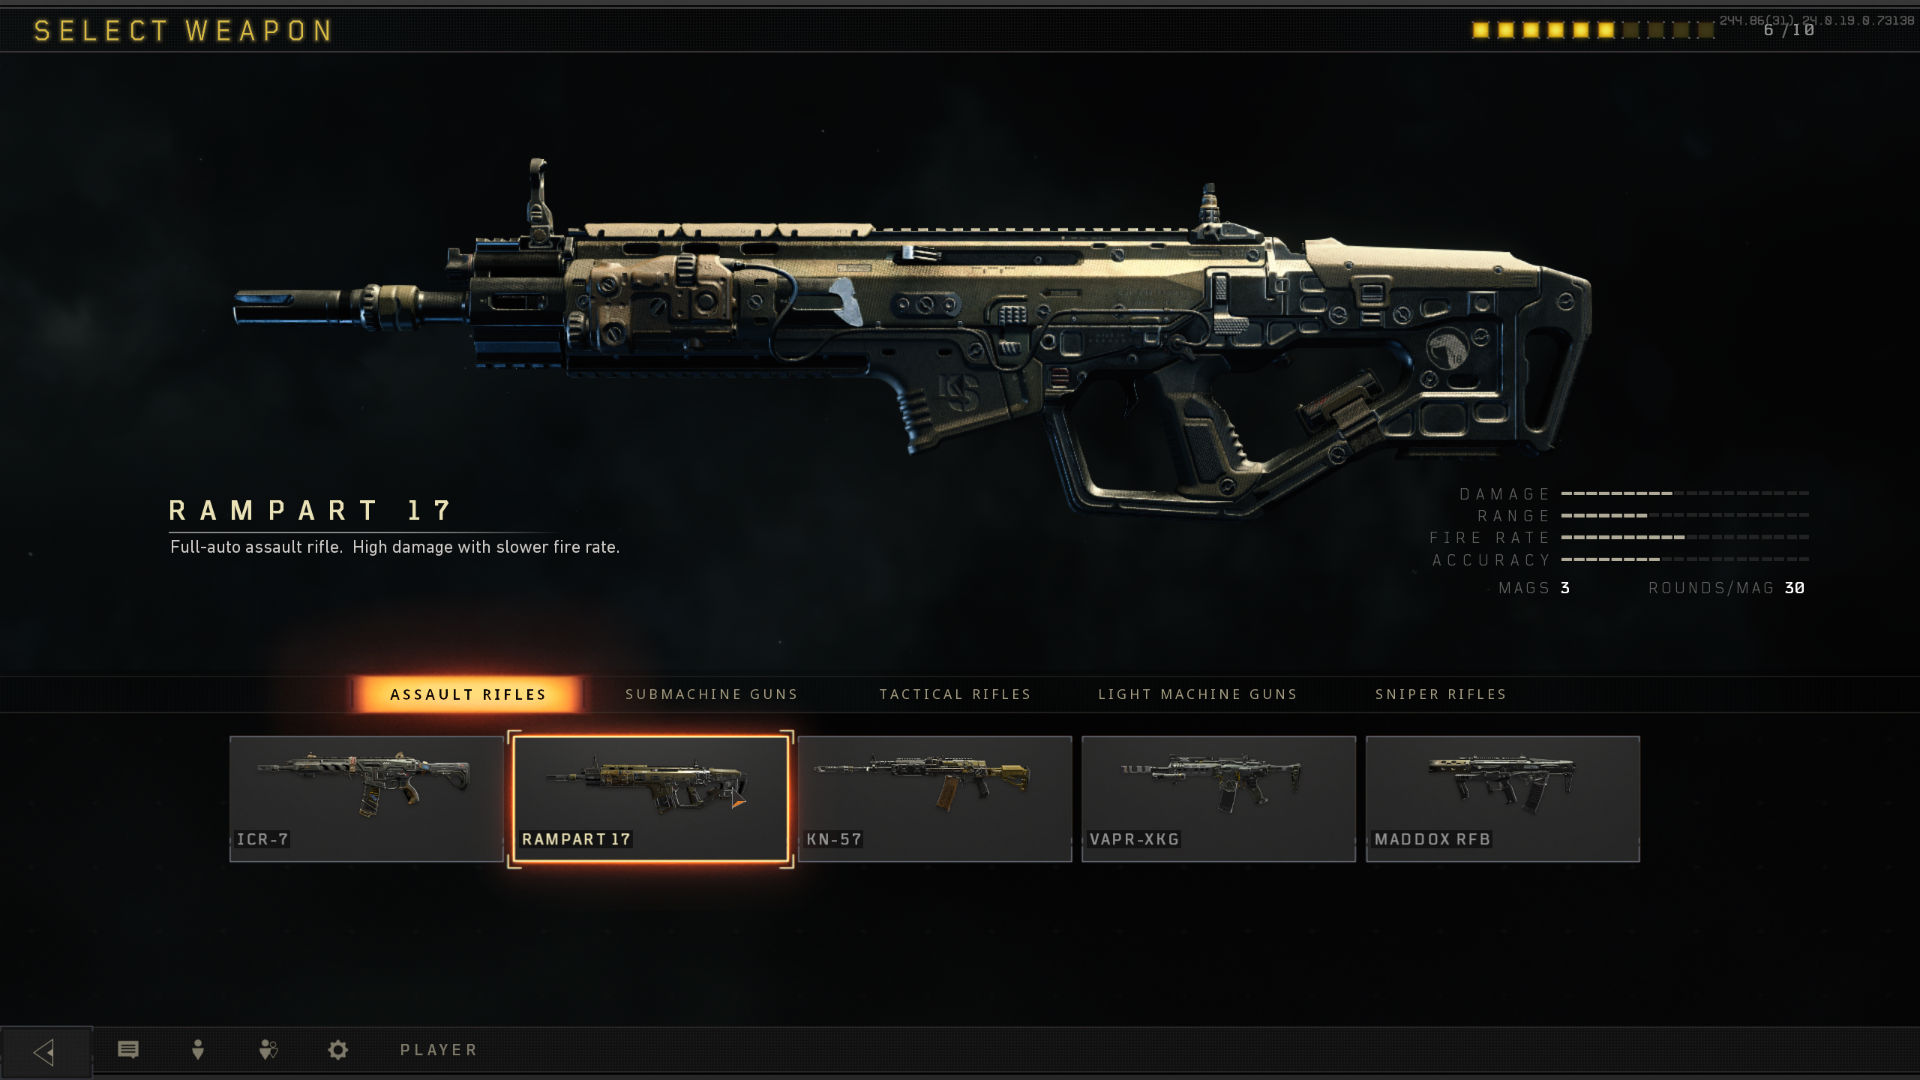 Call of Duty: Black Ops 4 weapons – every gun detailed